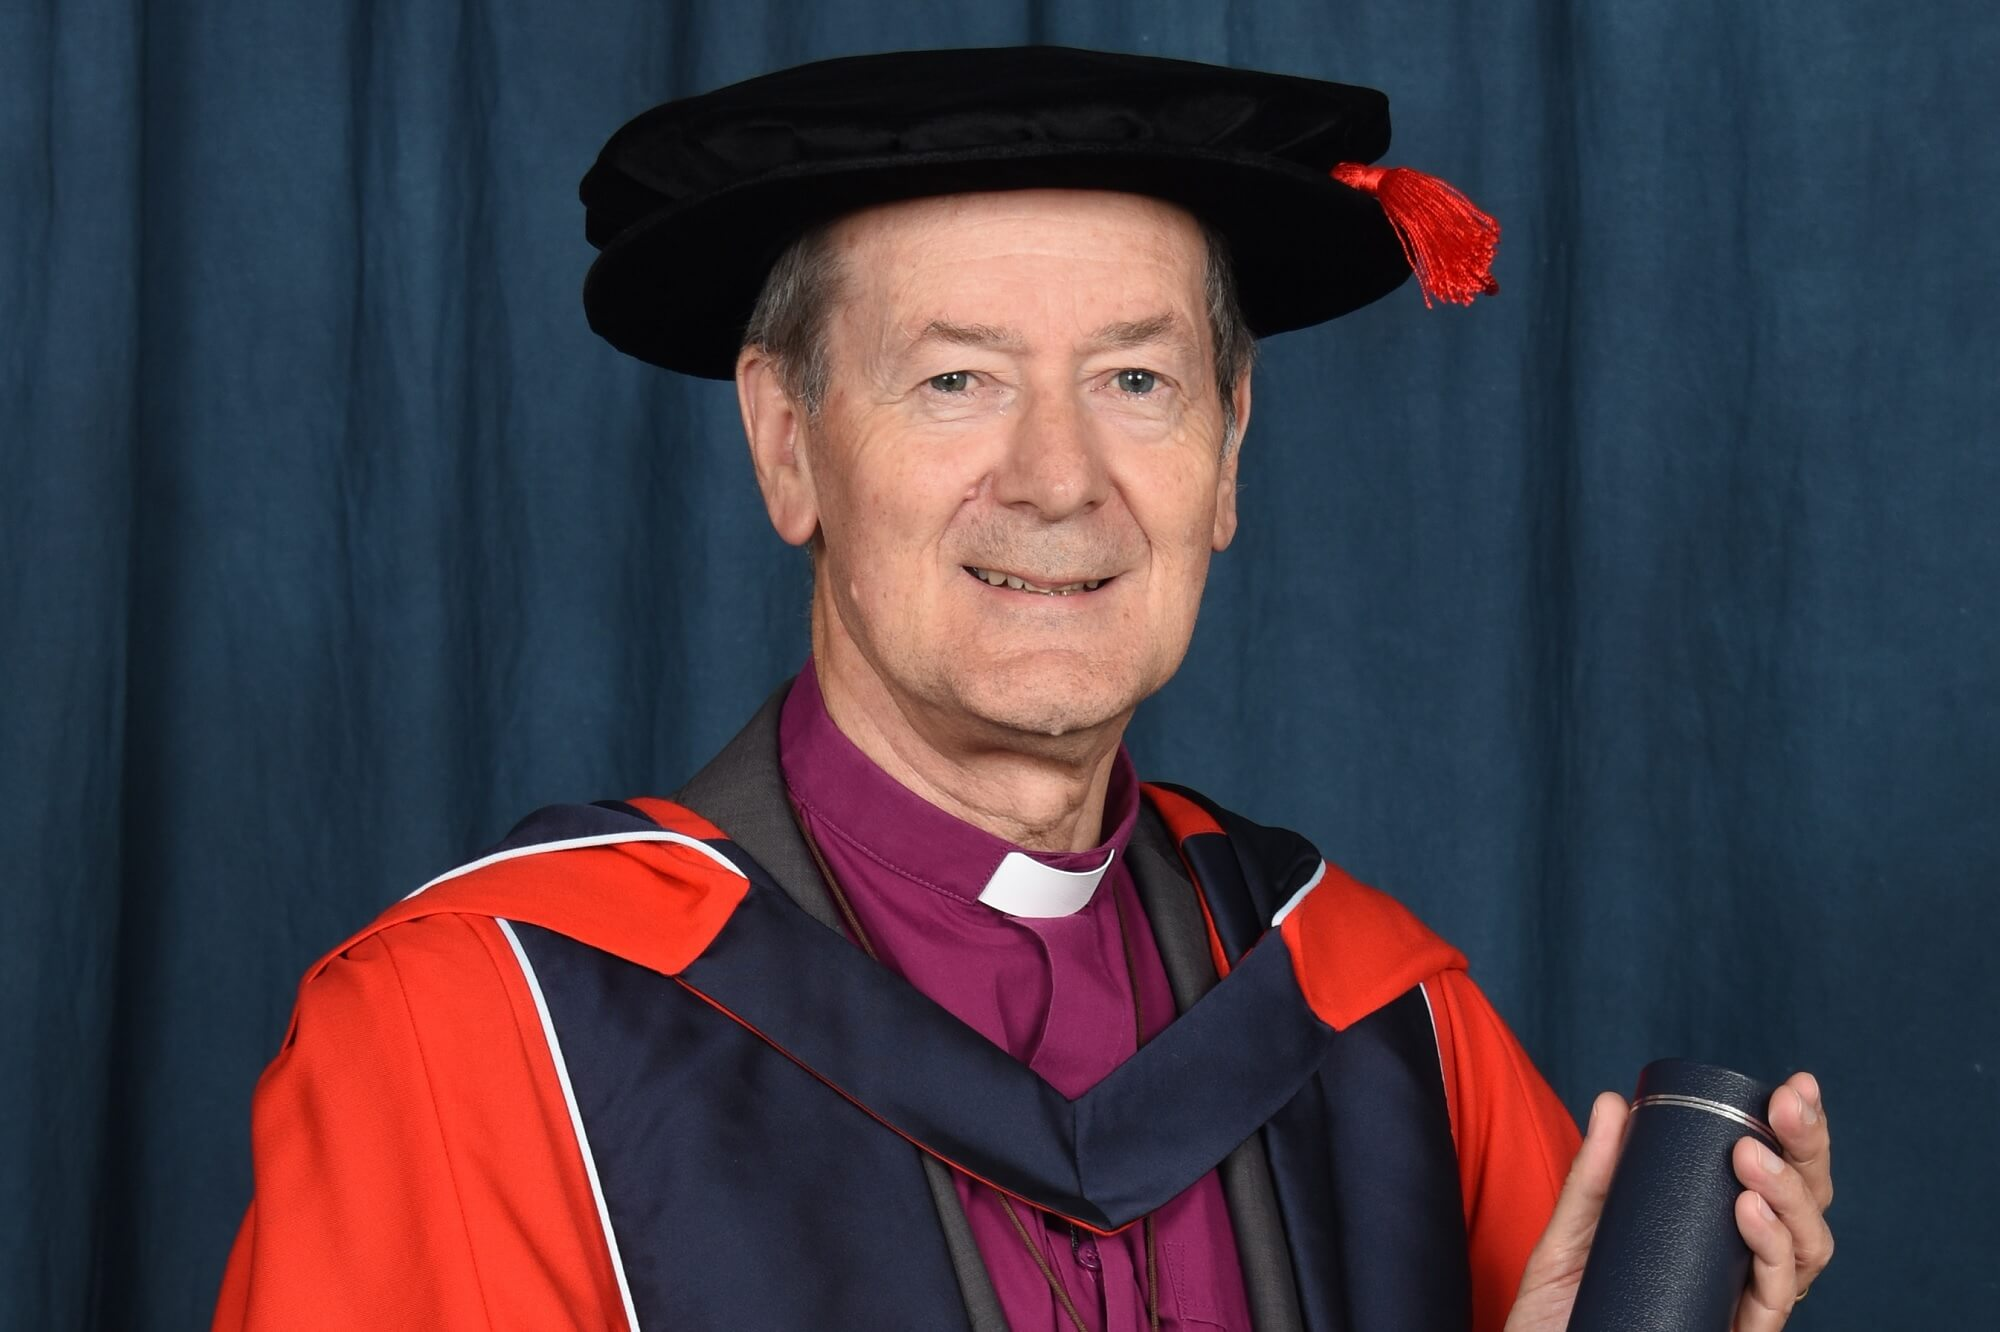 Dr Alastair Redfern receiving his honorary degree (HonLLD)